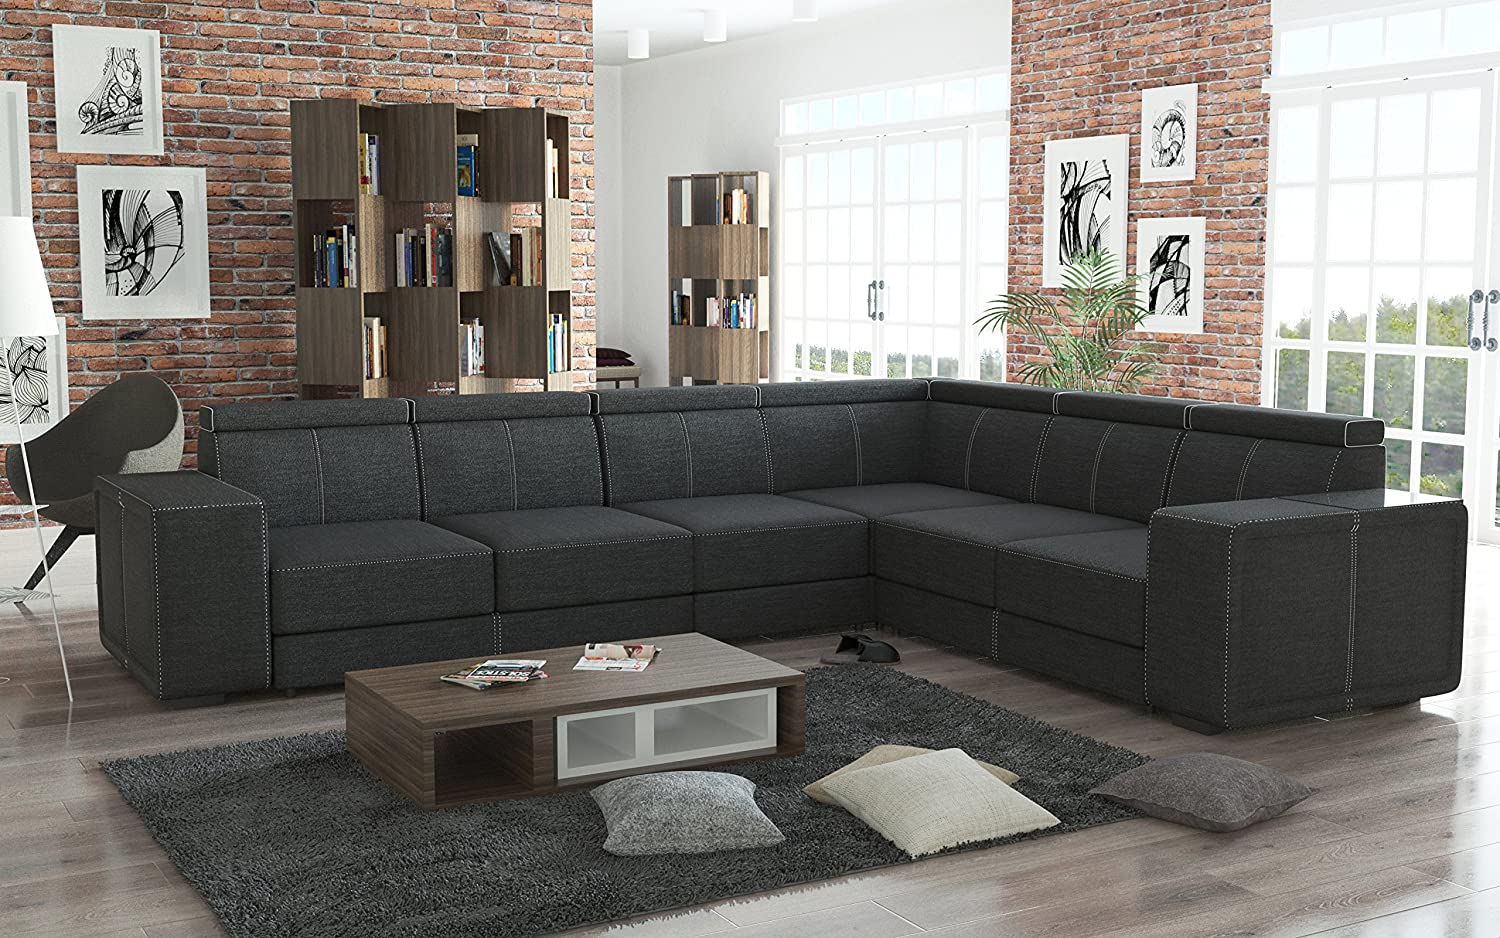 couchgarnitur couch garnitur sofa cari in boss 12 polsterecke wohnlandschaft online bestellen. Black Bedroom Furniture Sets. Home Design Ideas